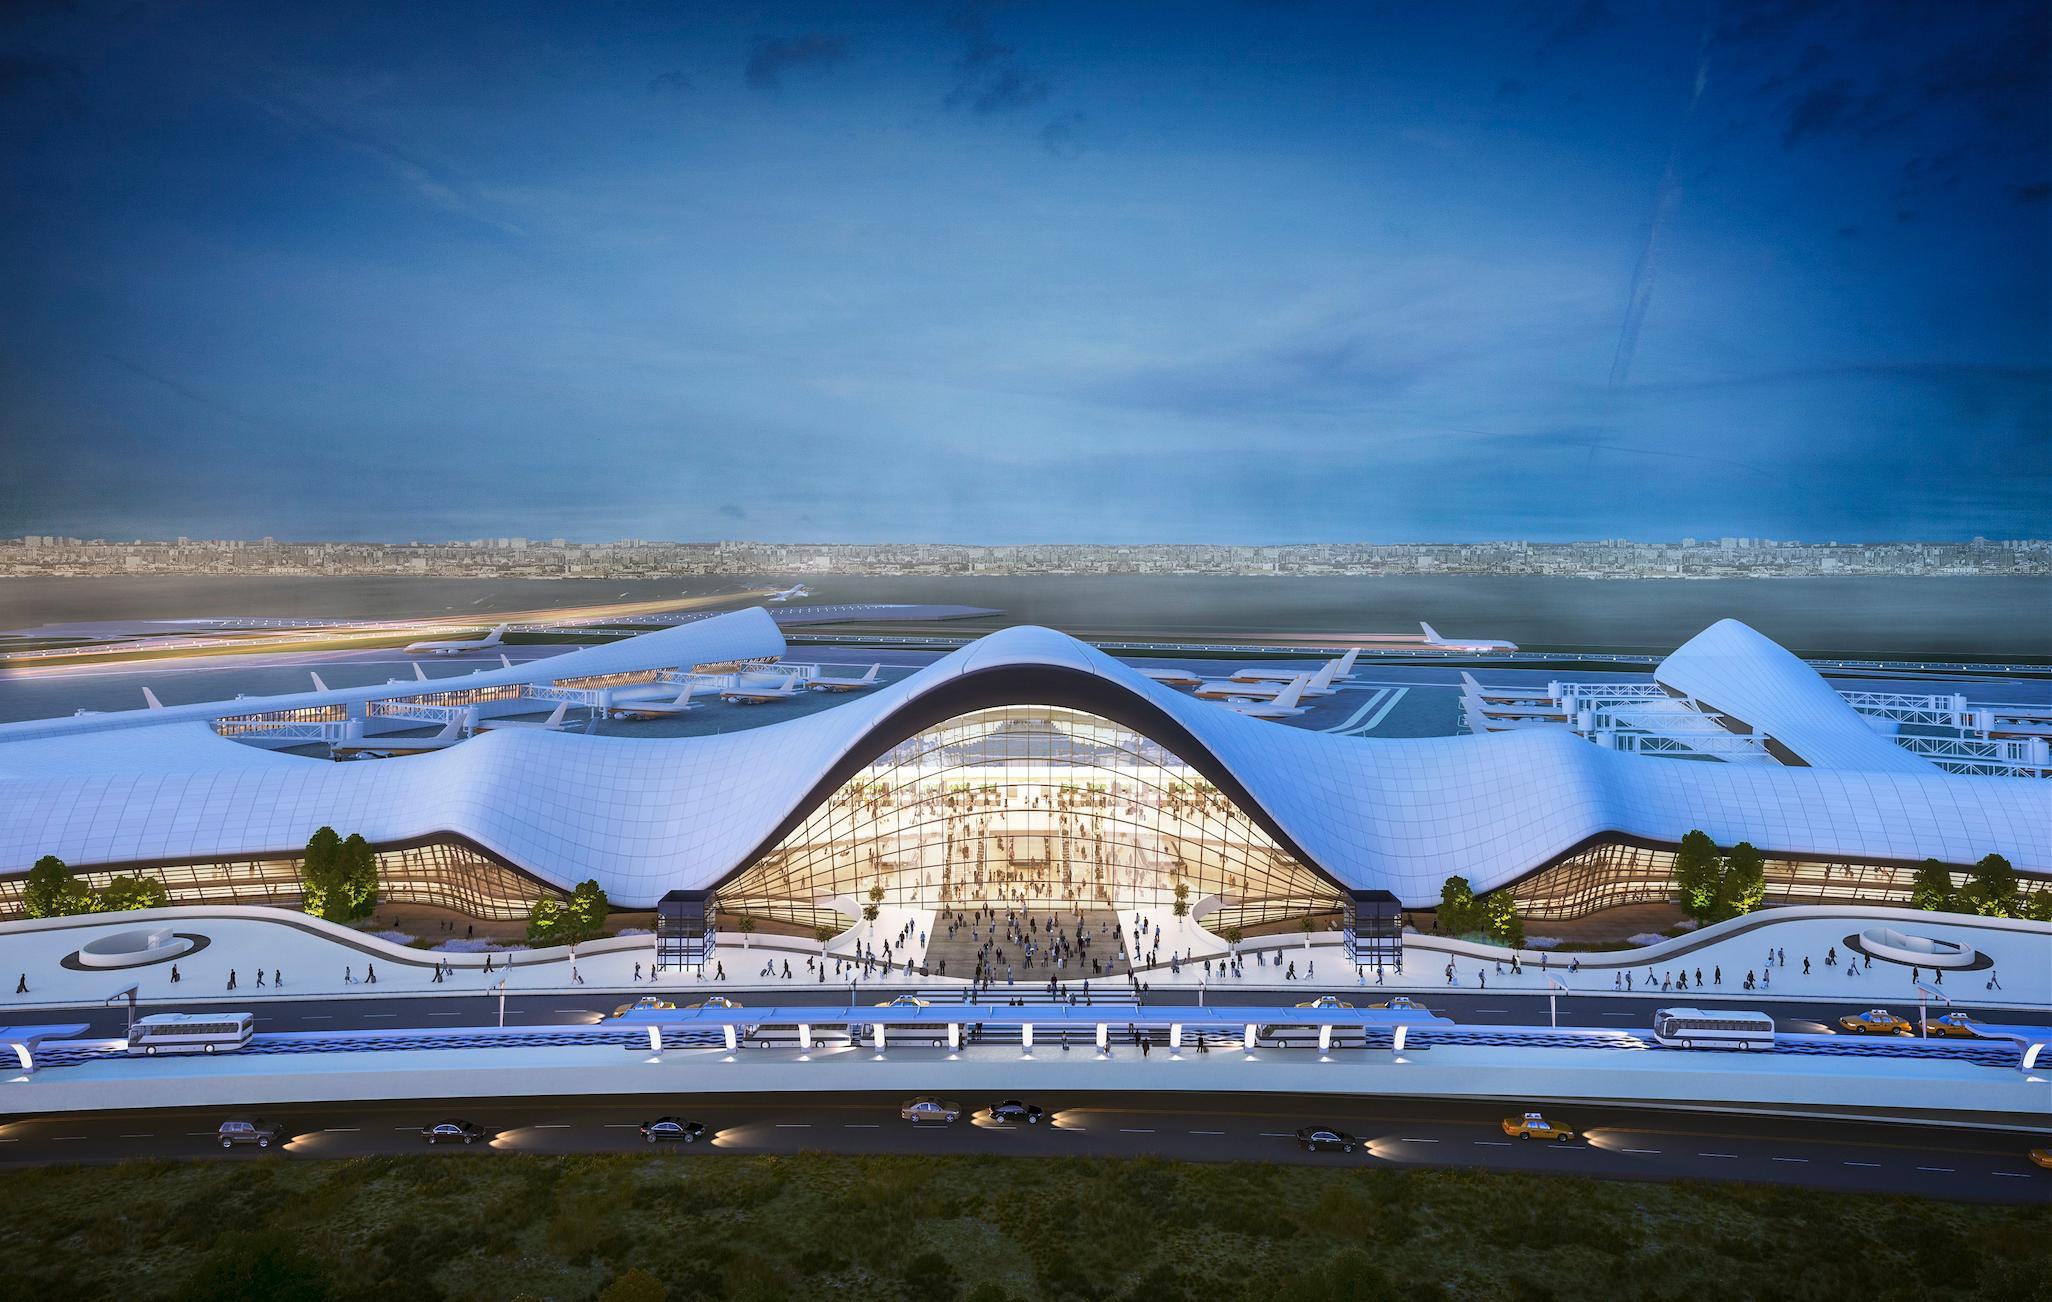 Conceptual rendering of redeveloped LaGuardia Airport, rendering by Neoscape